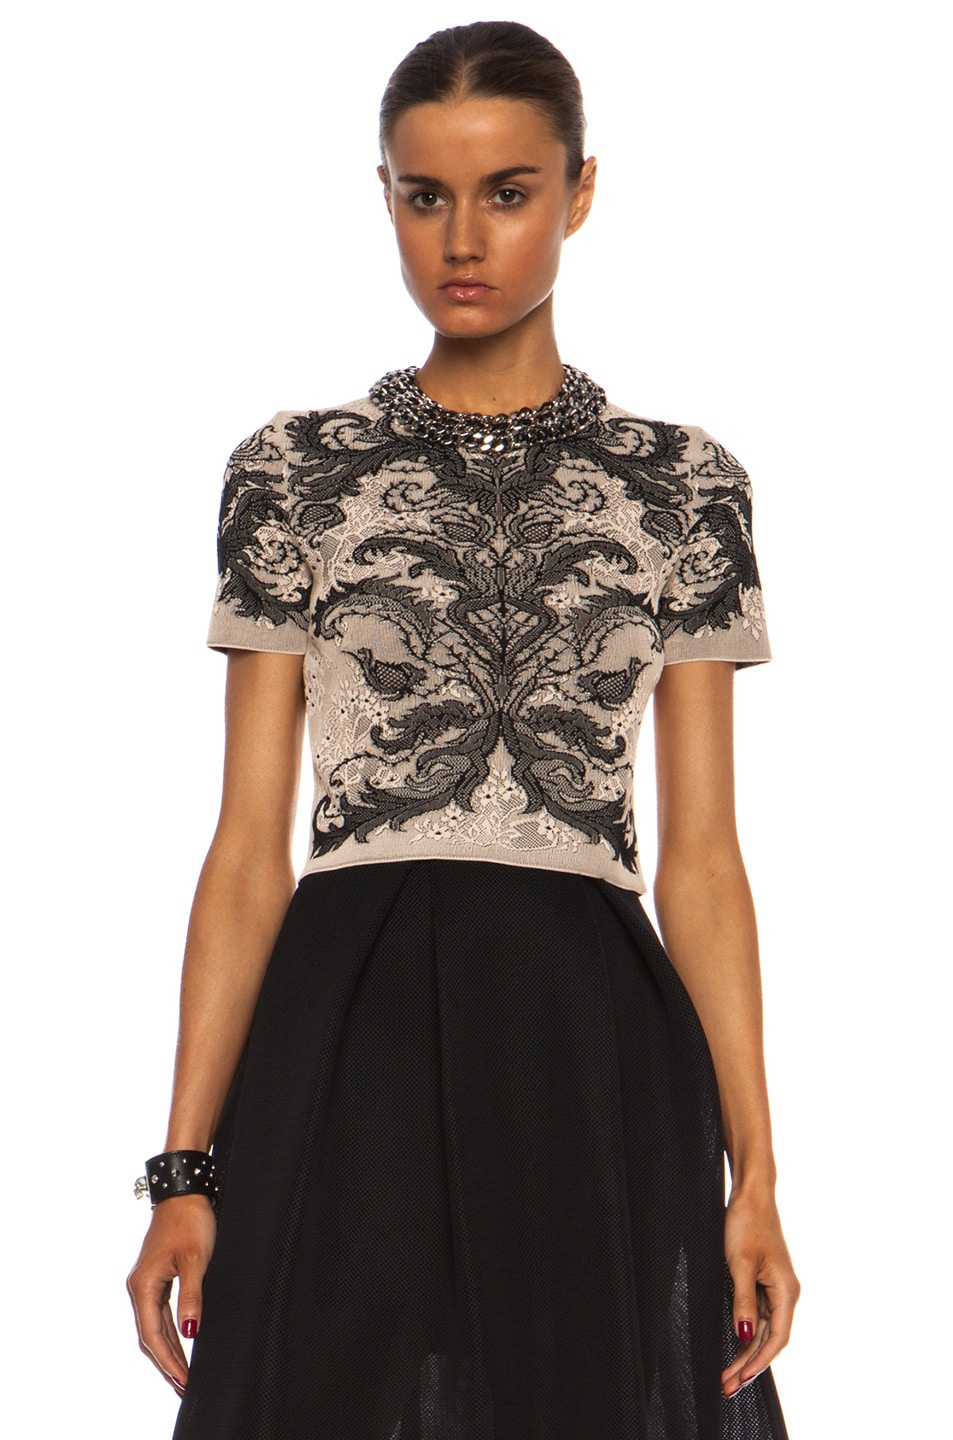 f236785b79082 Image 1 of Alexander McQueen Baroque Spine Lace Crop Top in Powder   Black